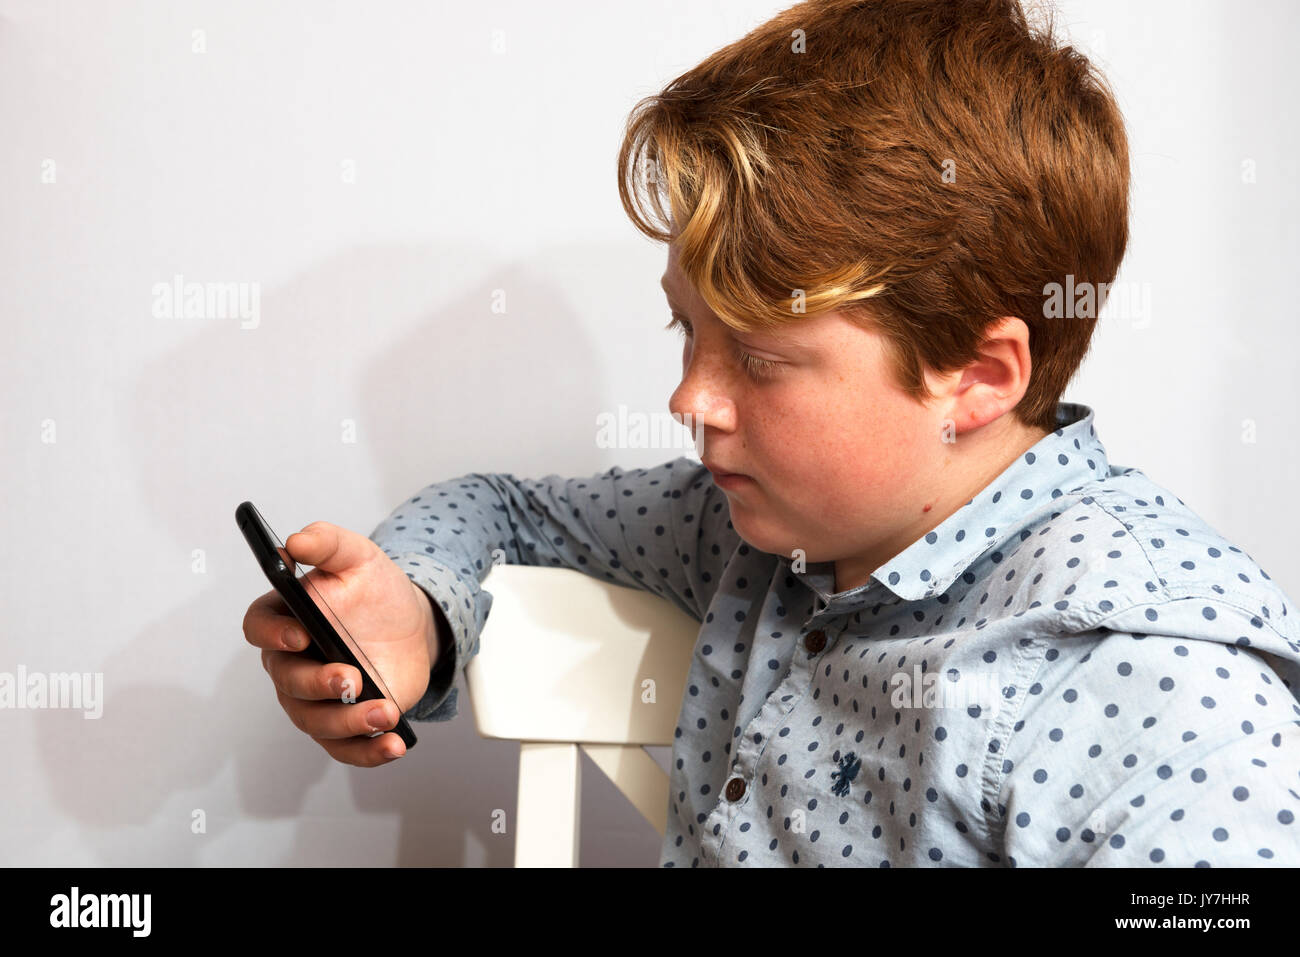 11-year old boy using smartphone - Stock Image